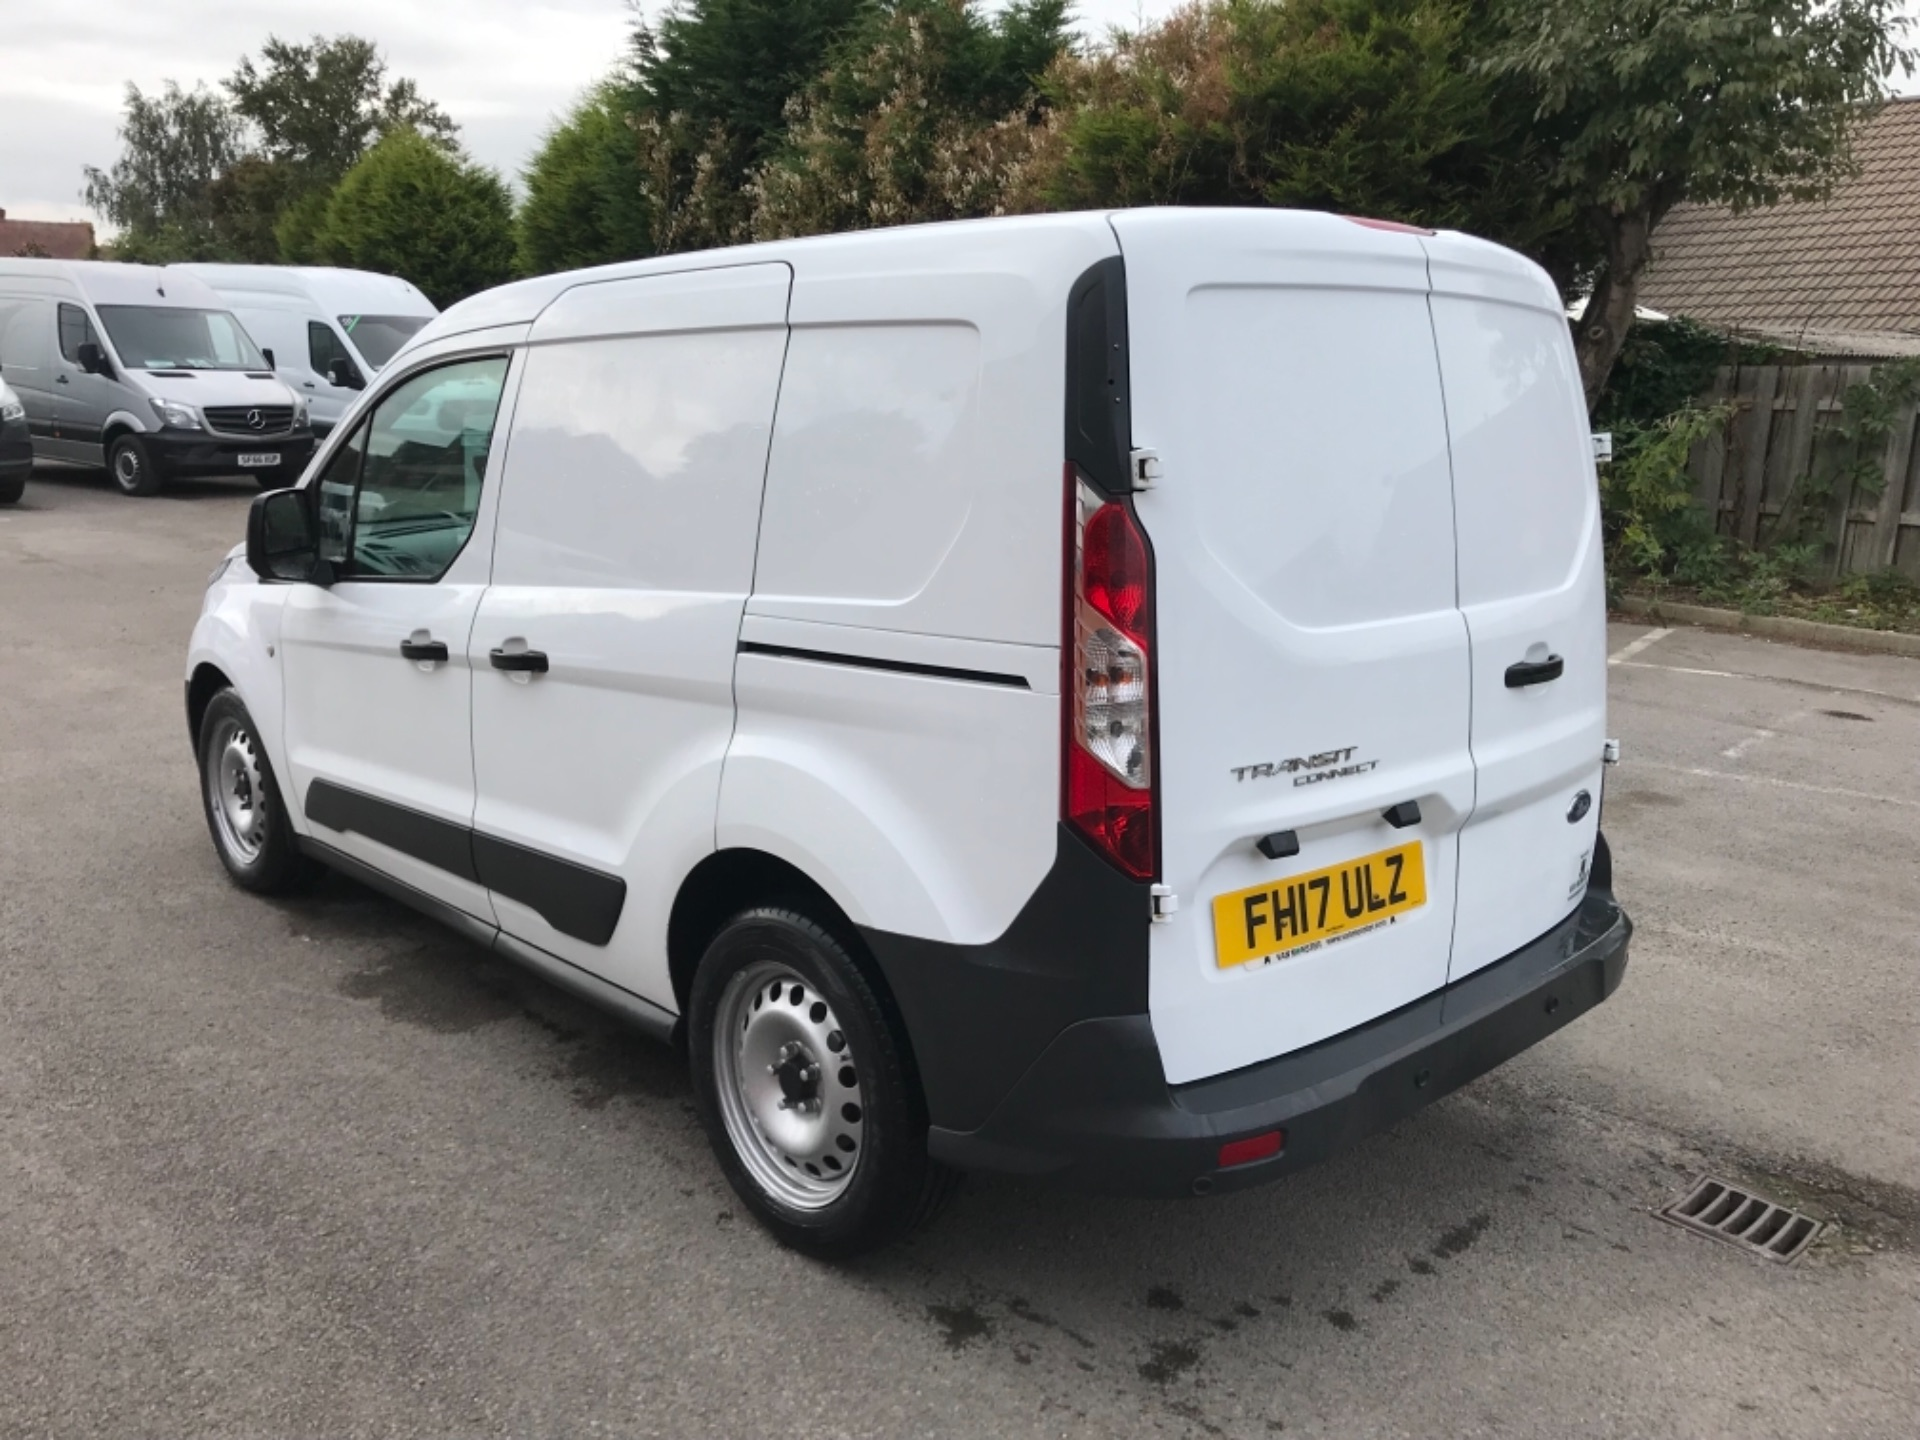 2017 Ford Transit Connect 1.5 Tdci 75Ps Van EURO 6 (FH17ULZ) Image 5